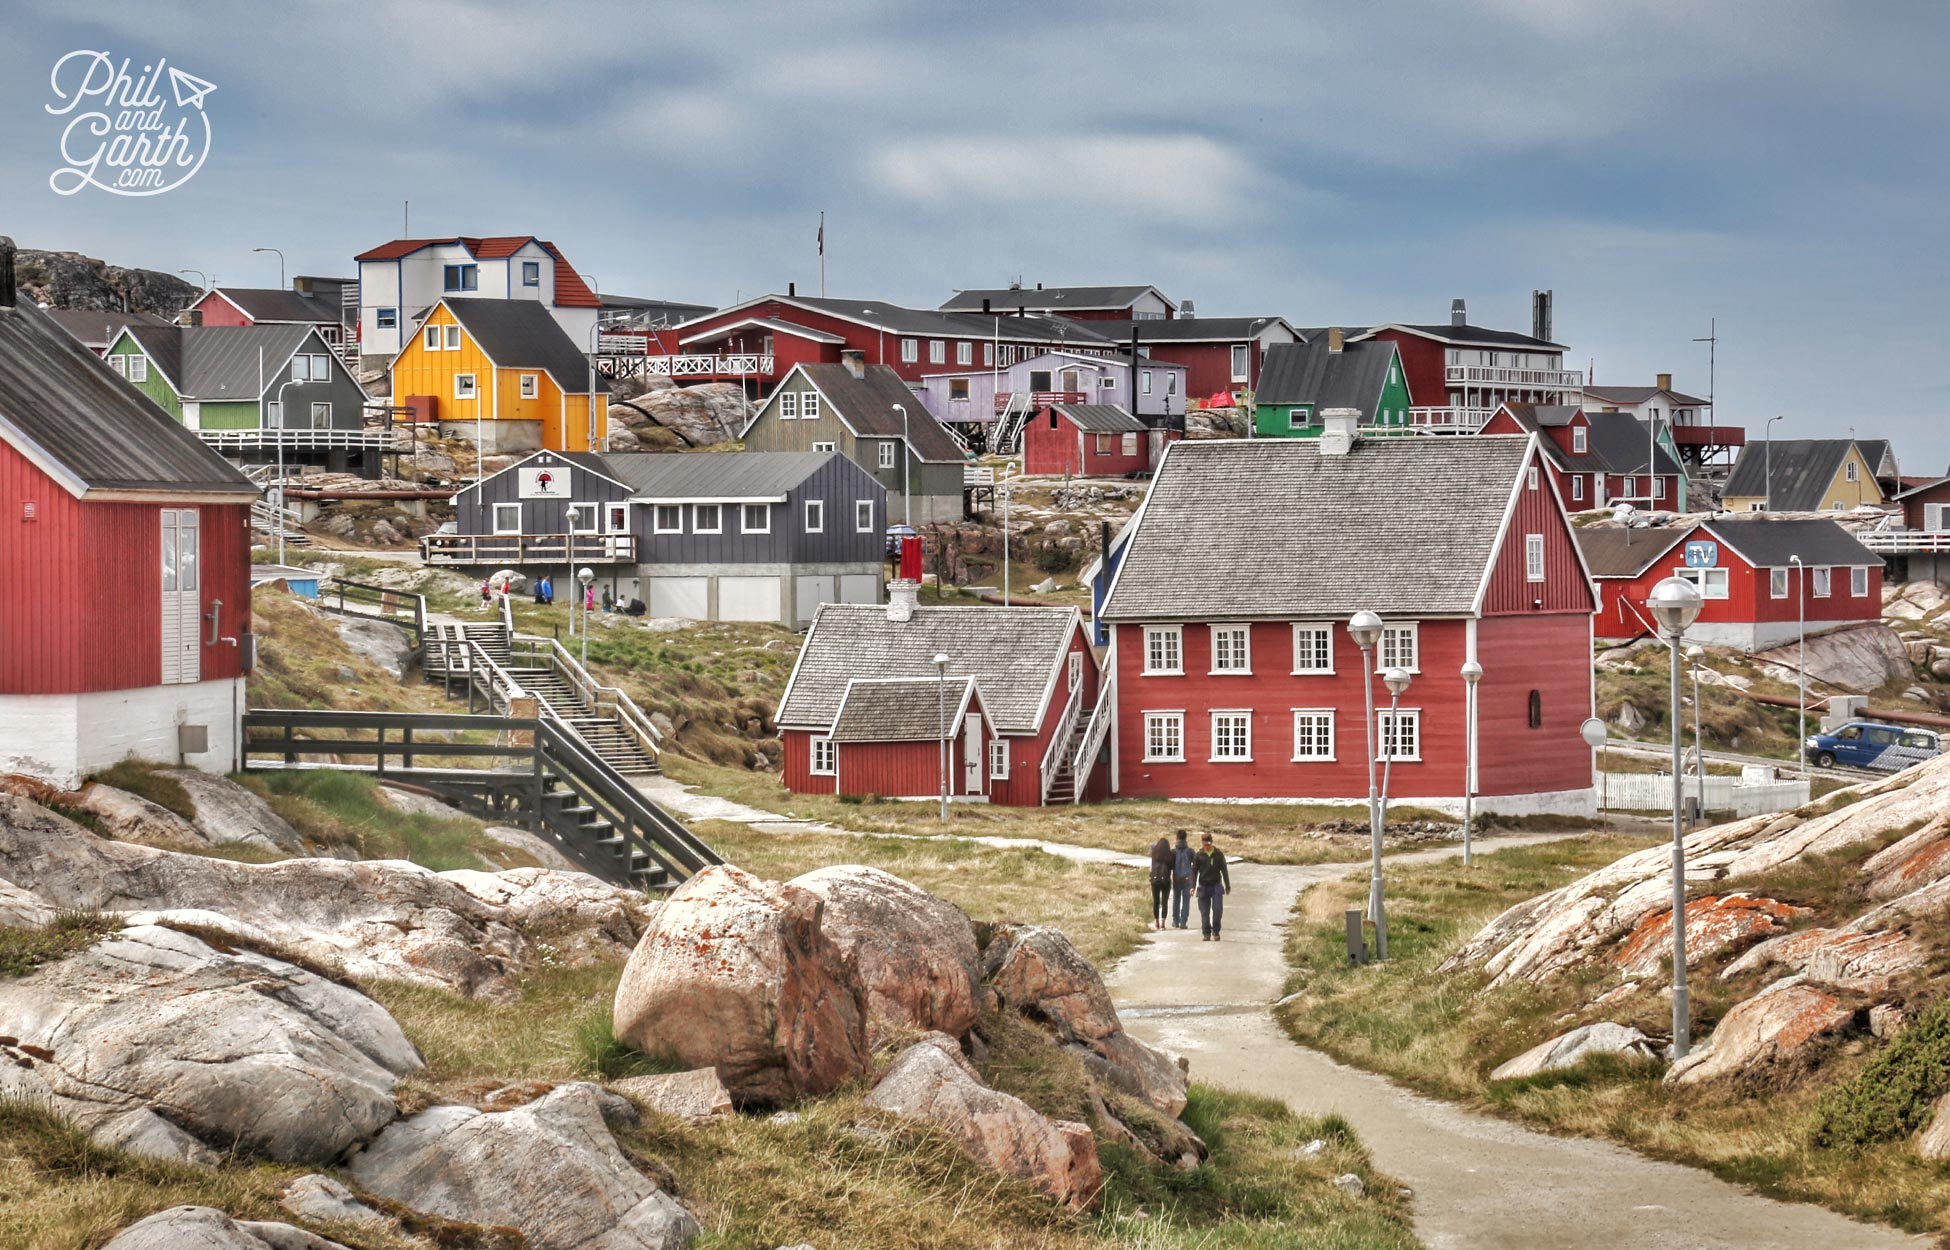 Taking a walk through Ilulissat